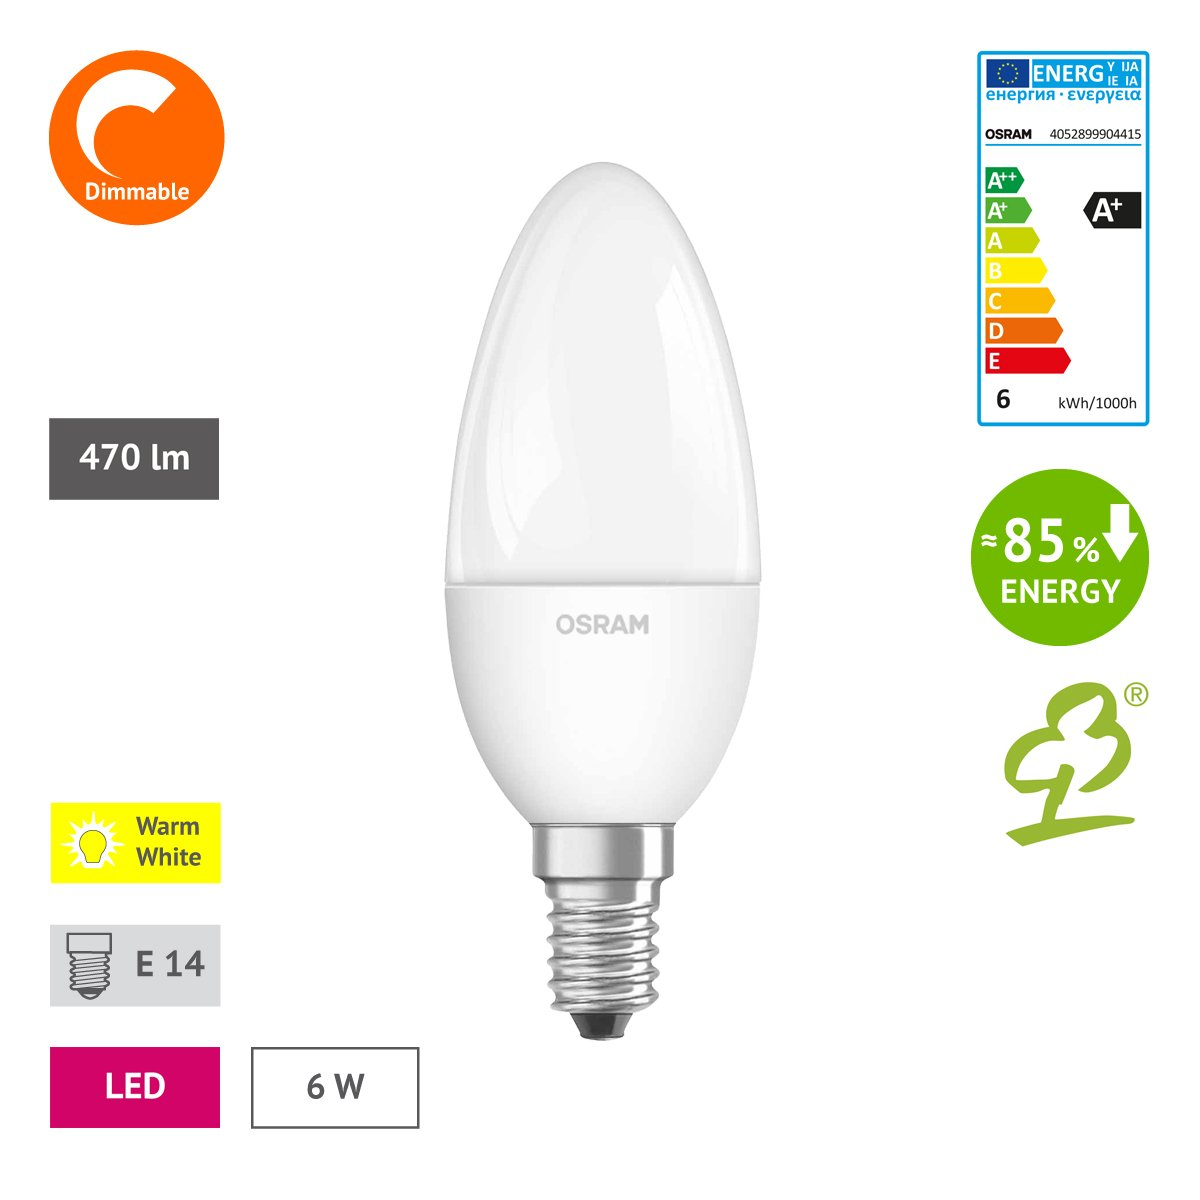 Osram led superstar classic b in kerzenform mit e14 sockel osram led superstar classic b in kerzenform mit e14 sockel dimmbar ersetzt 40 watt matt warmwei 2700 kelvin 6er pack 4052899904446 amazon parisarafo Image collections